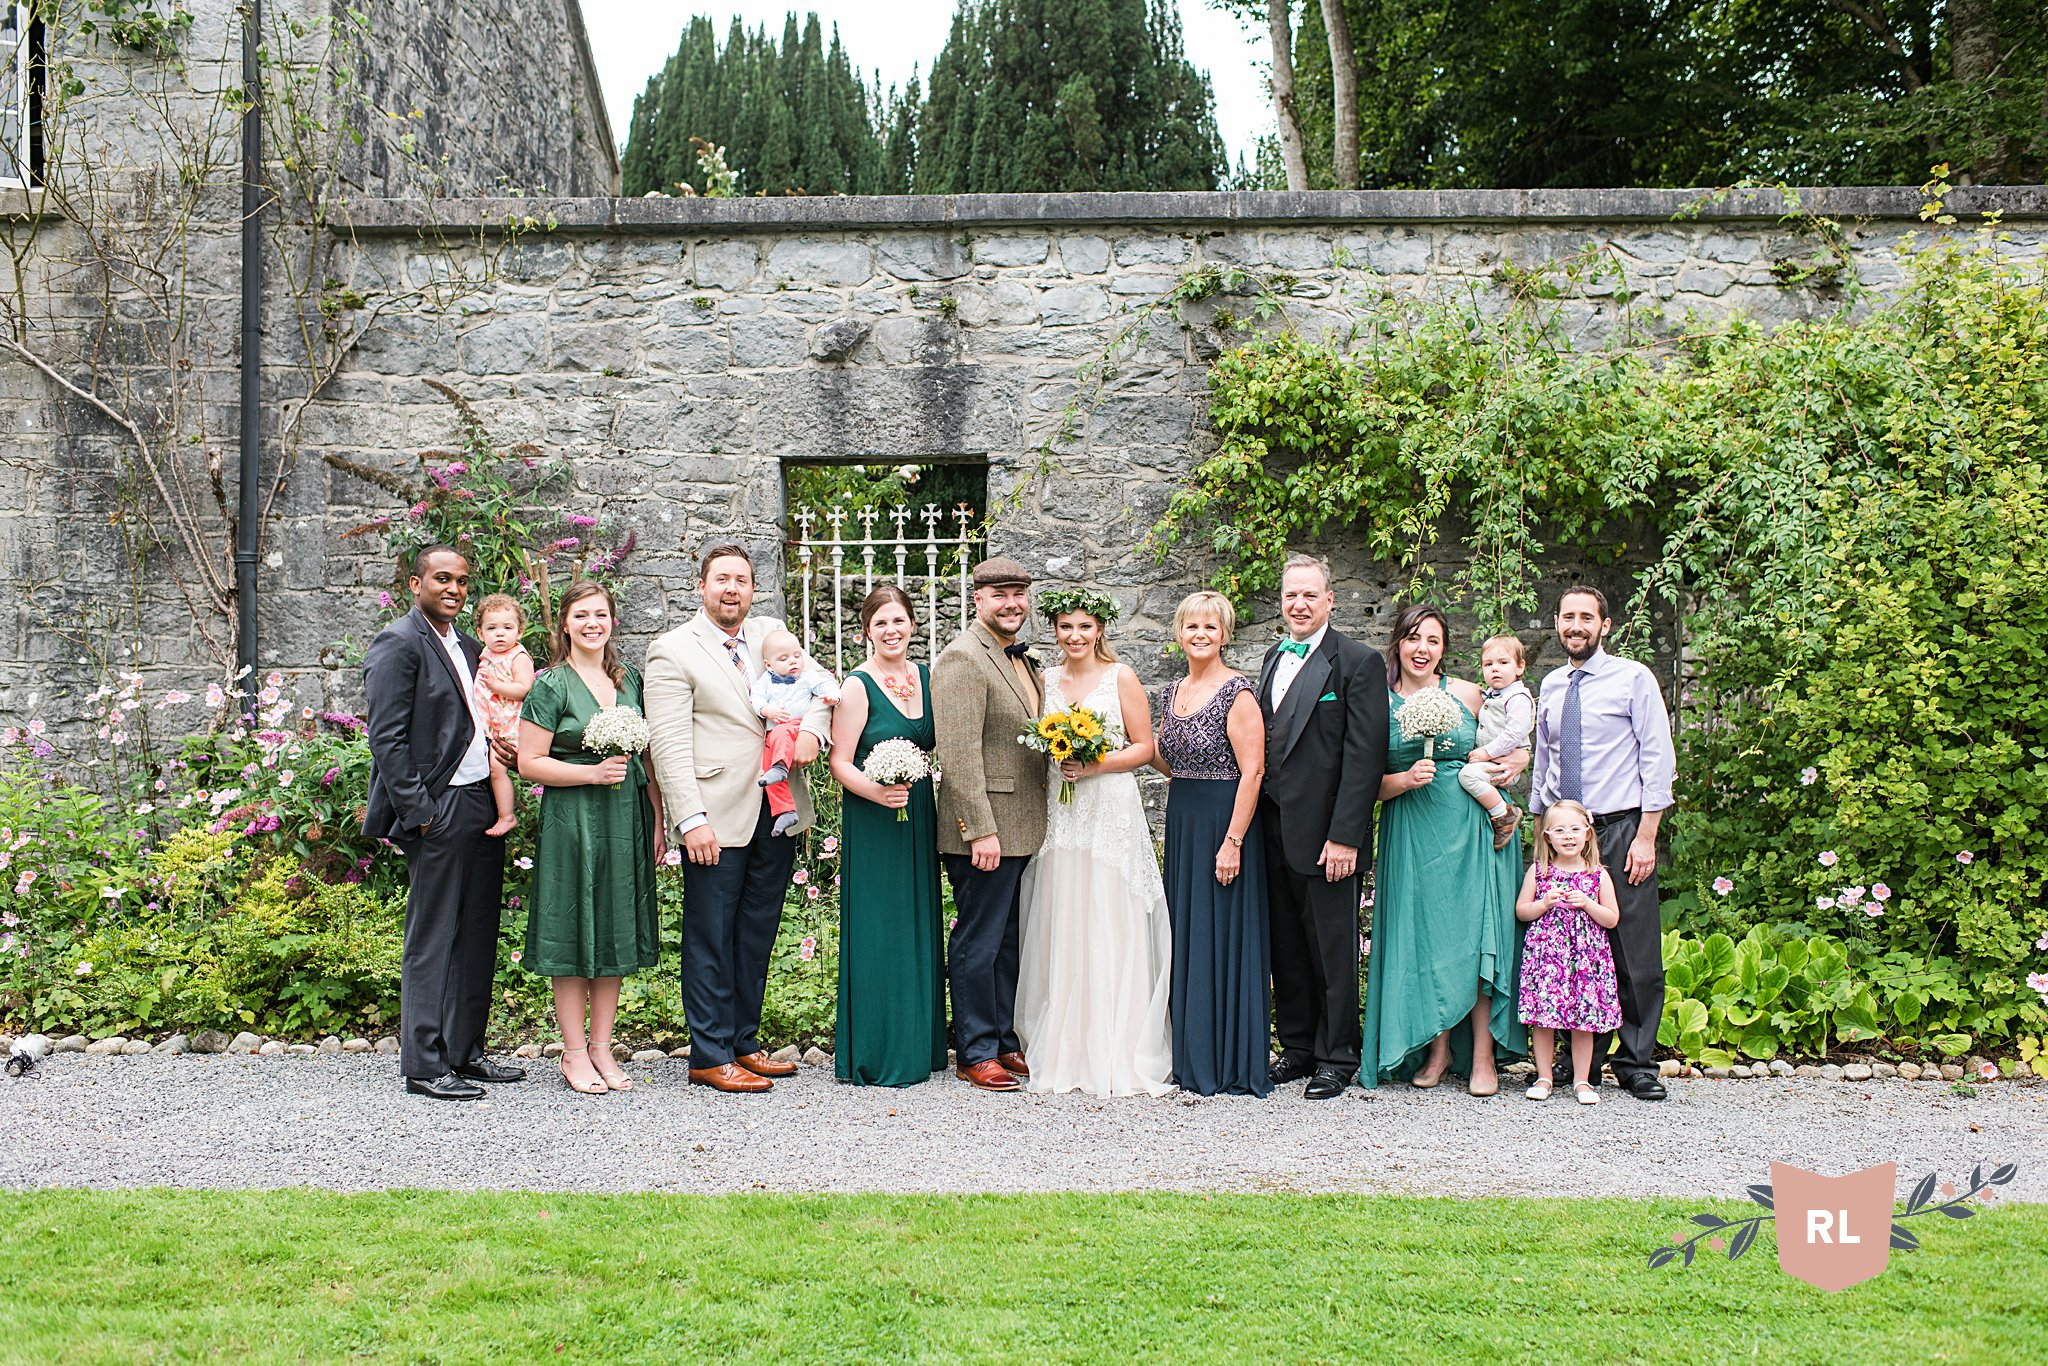 RossCastleWedding_Ireland_1010.jpg